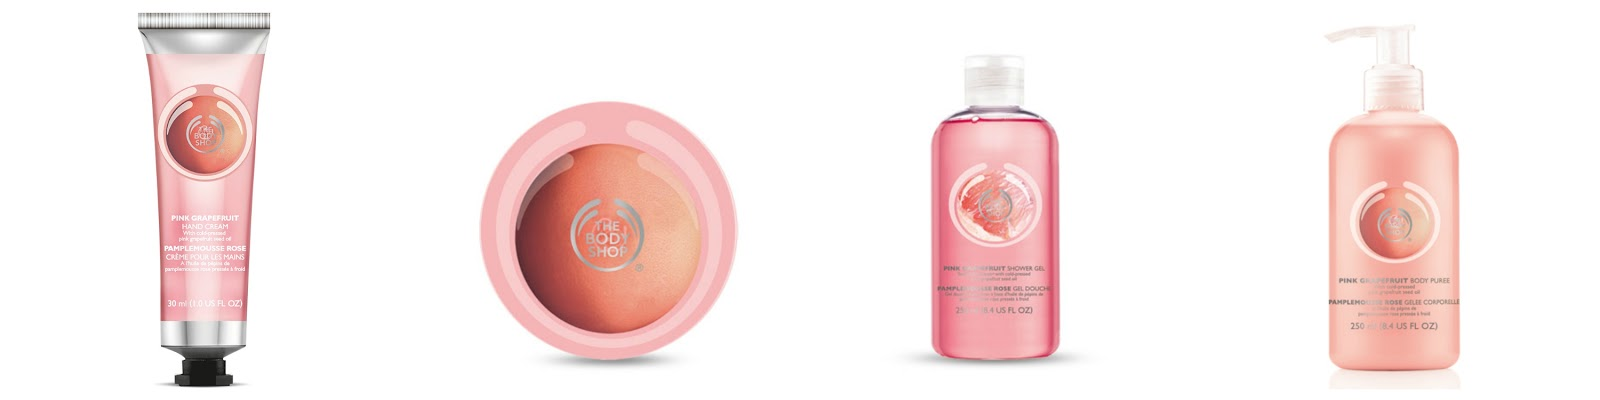 The Bodyshop Grapefruit range